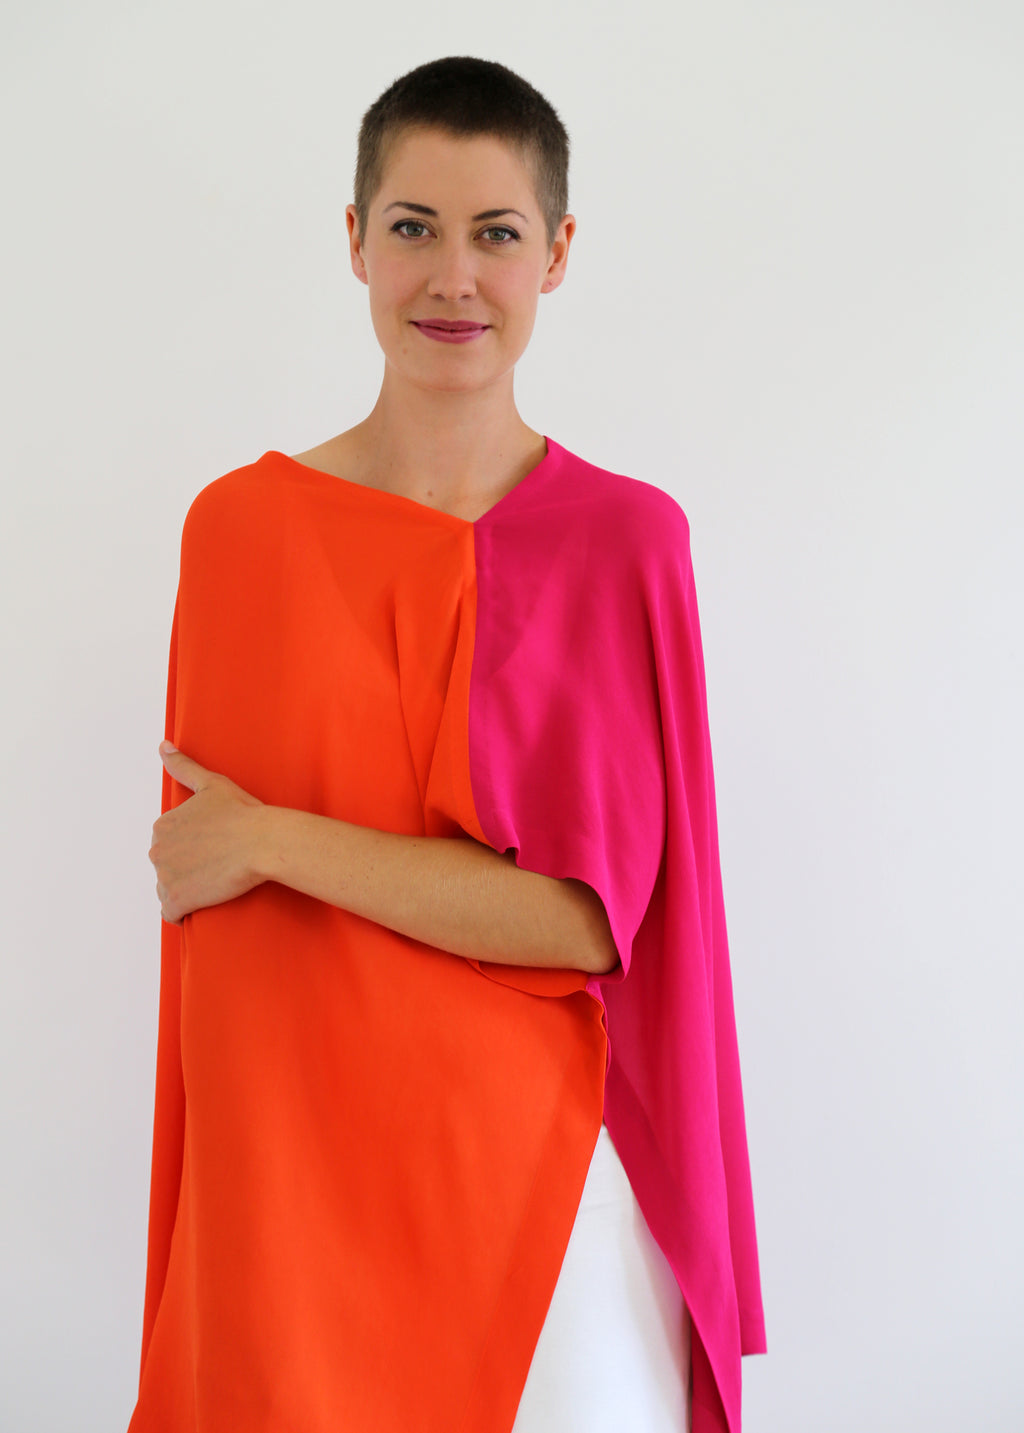 Fraser Crowe Slouch oversize top pink orange, ethical fashion, sustainable fashion, designer clothes, plus size clothing, textile print clothing, luxury online fashion, slow fashion